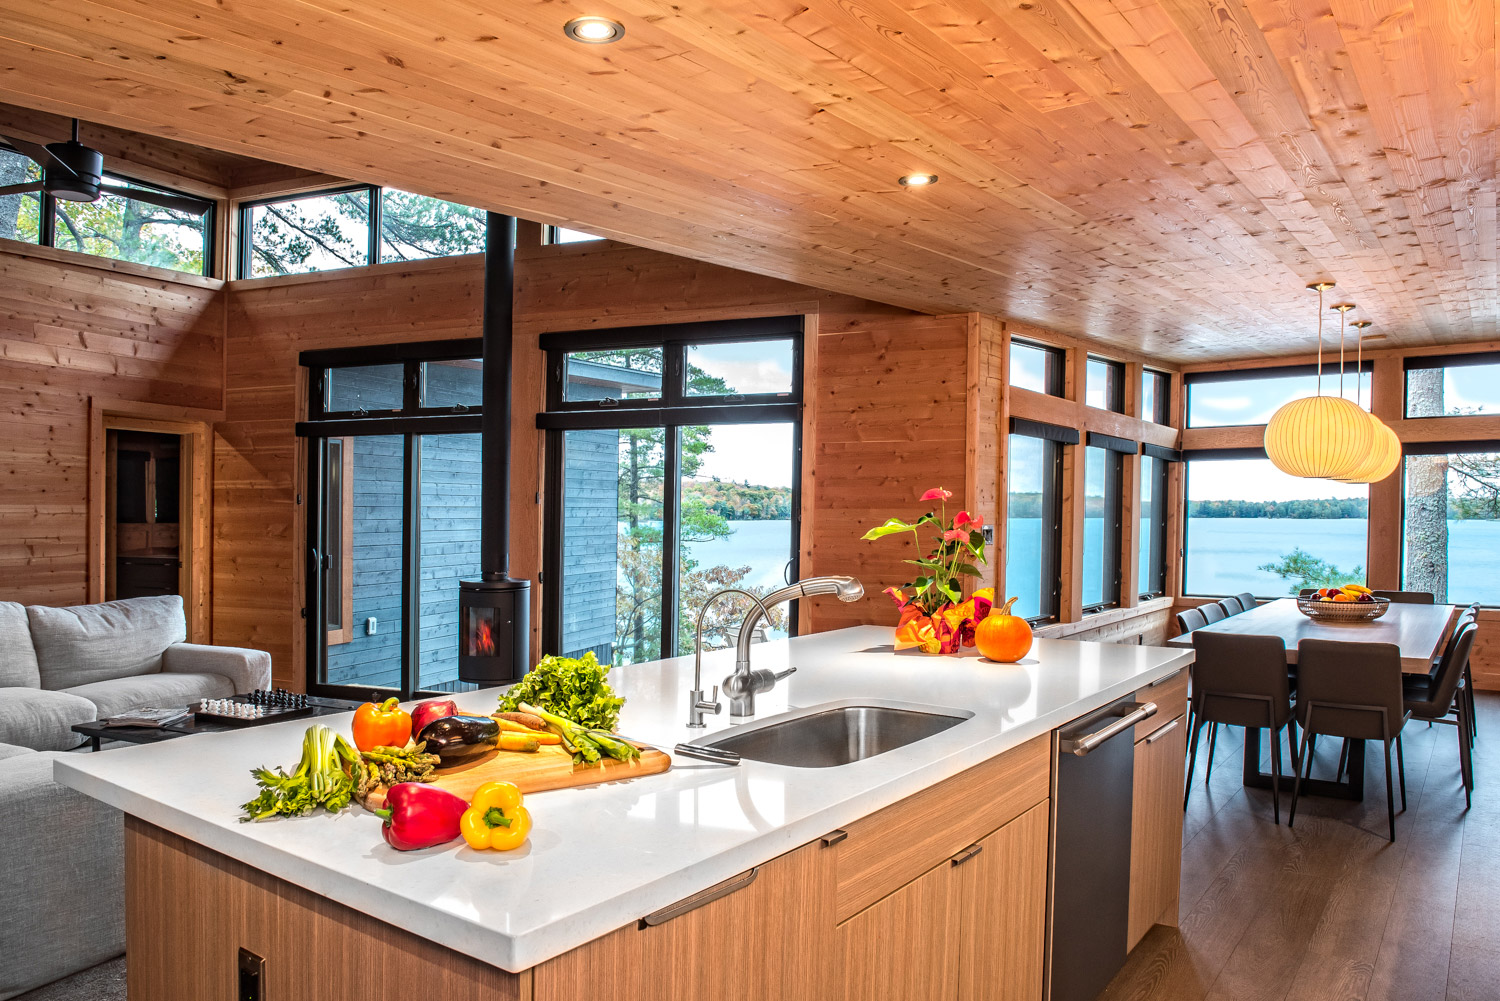 Kitchen dining room, and living room in pre-fabricated cottage with quartz countertops with undermounted sink